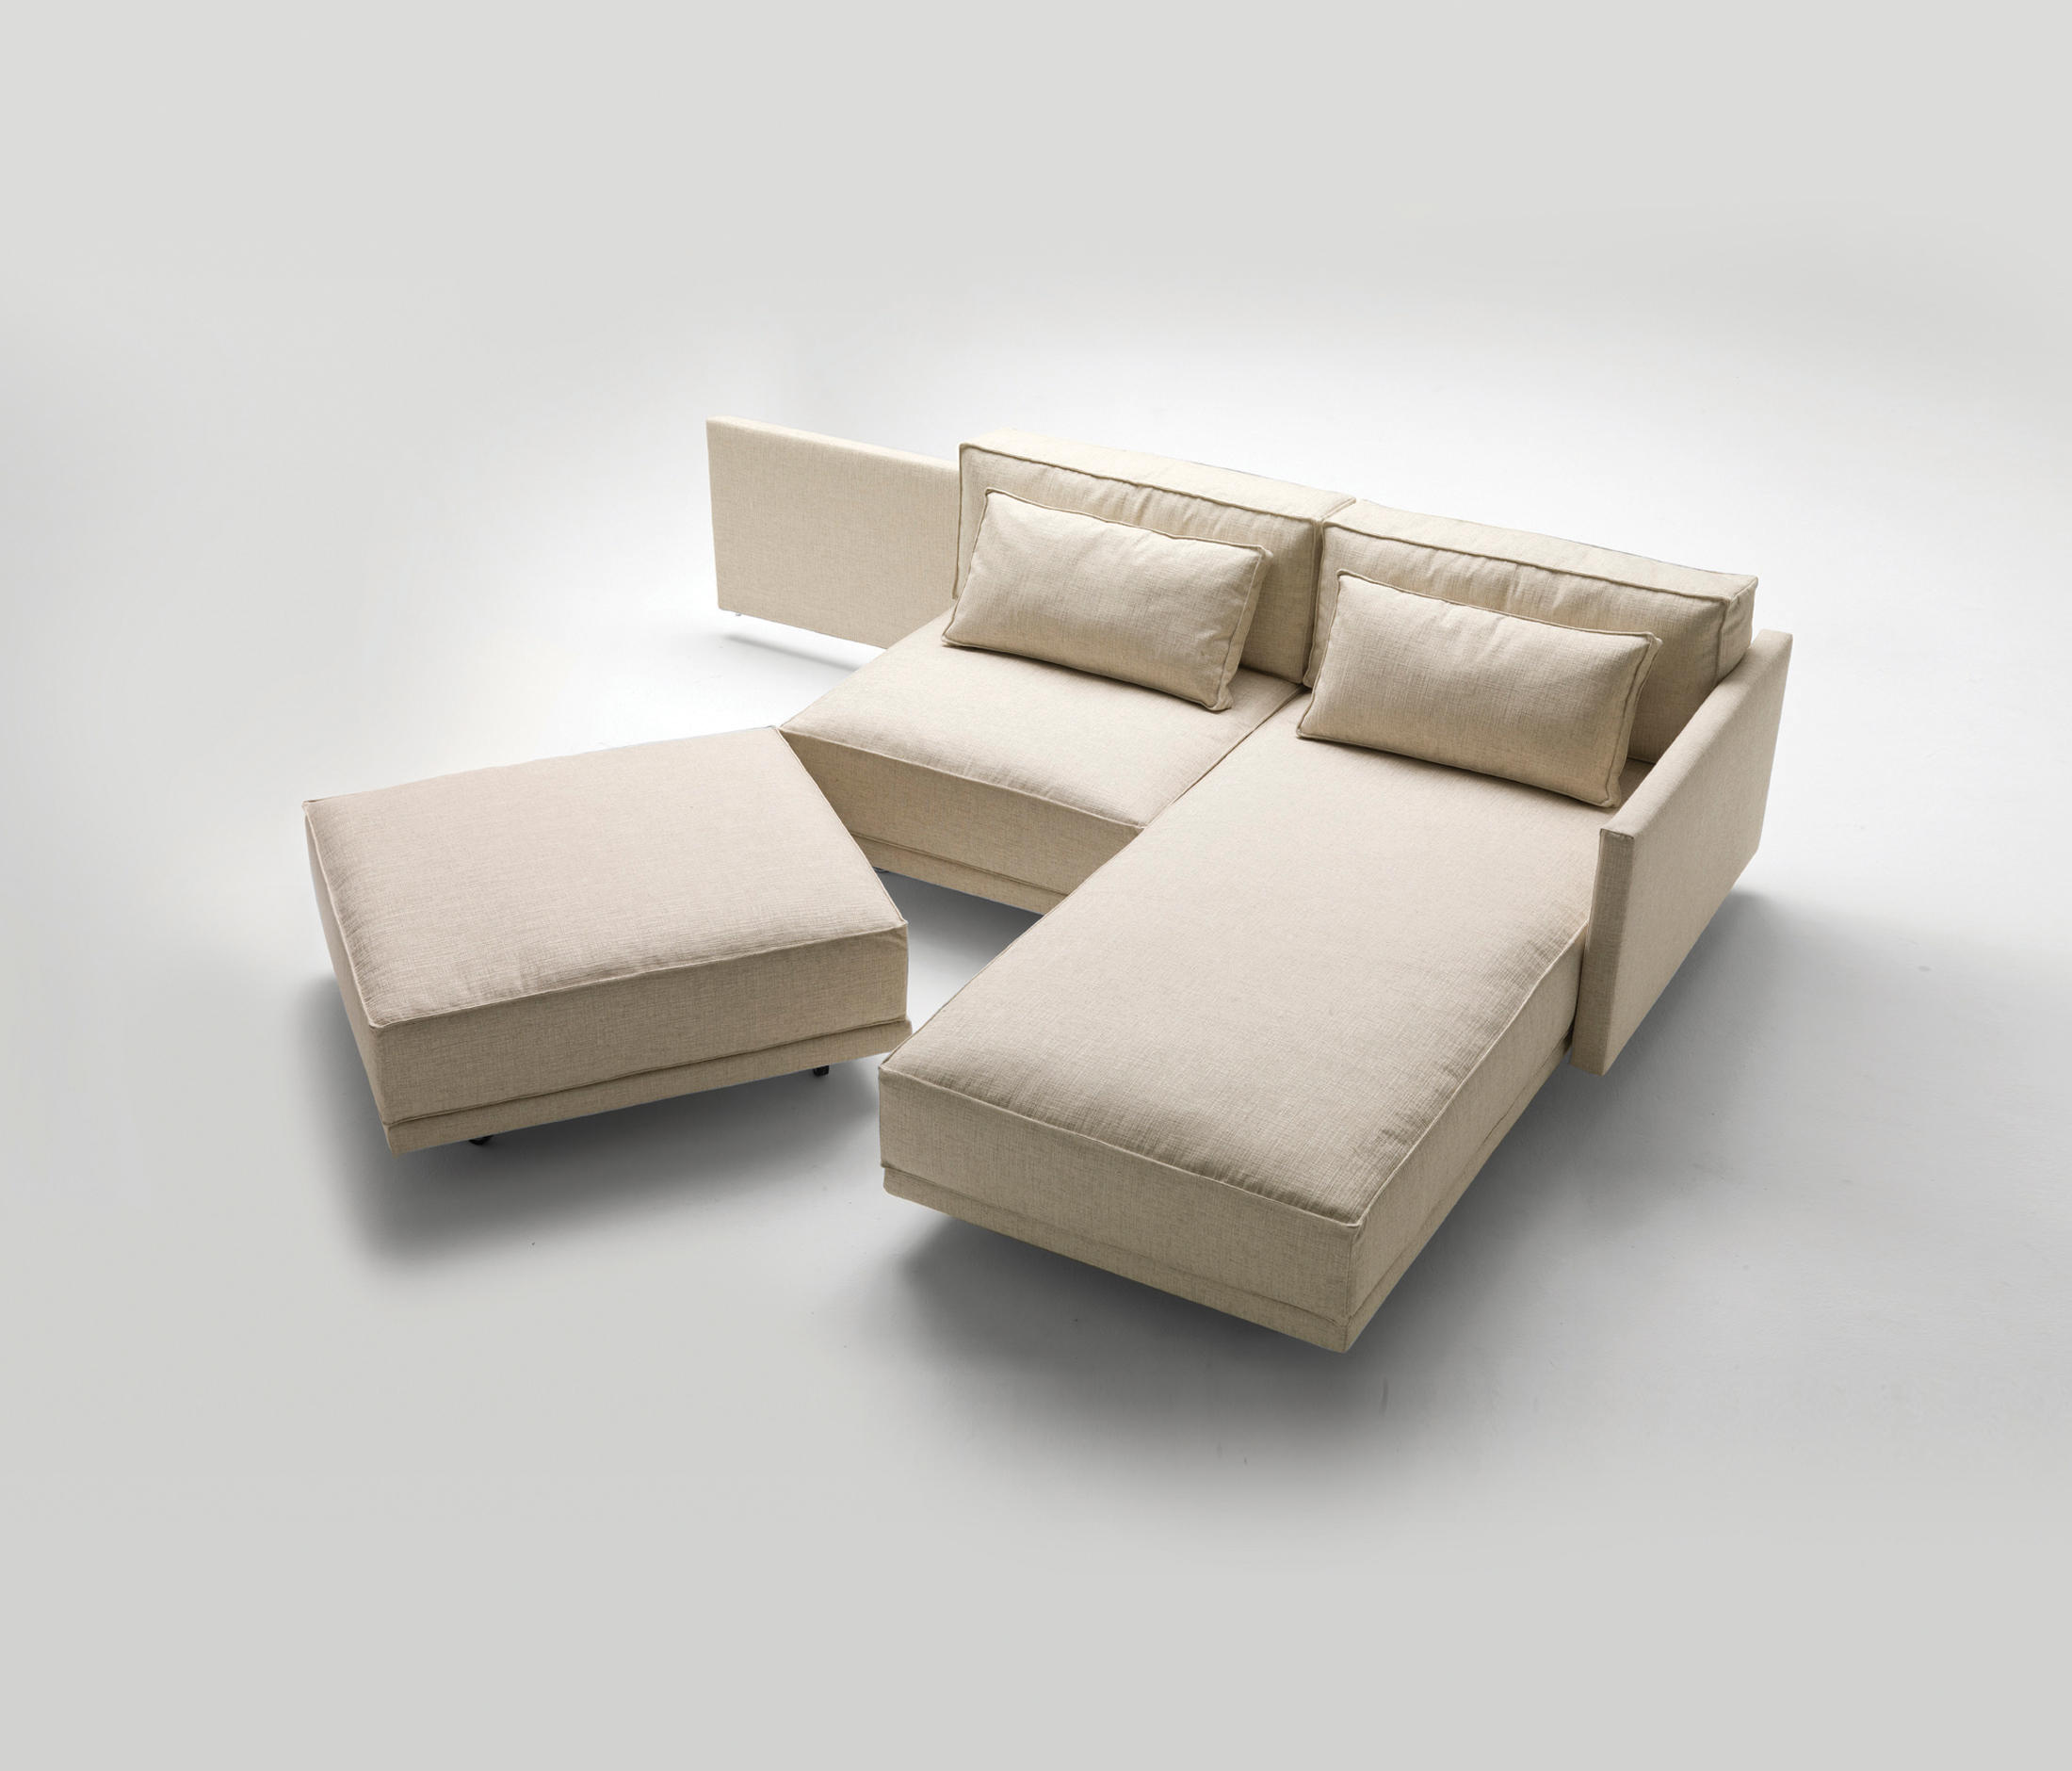 dennis sofa beds from milano bedding architonic. Black Bedroom Furniture Sets. Home Design Ideas